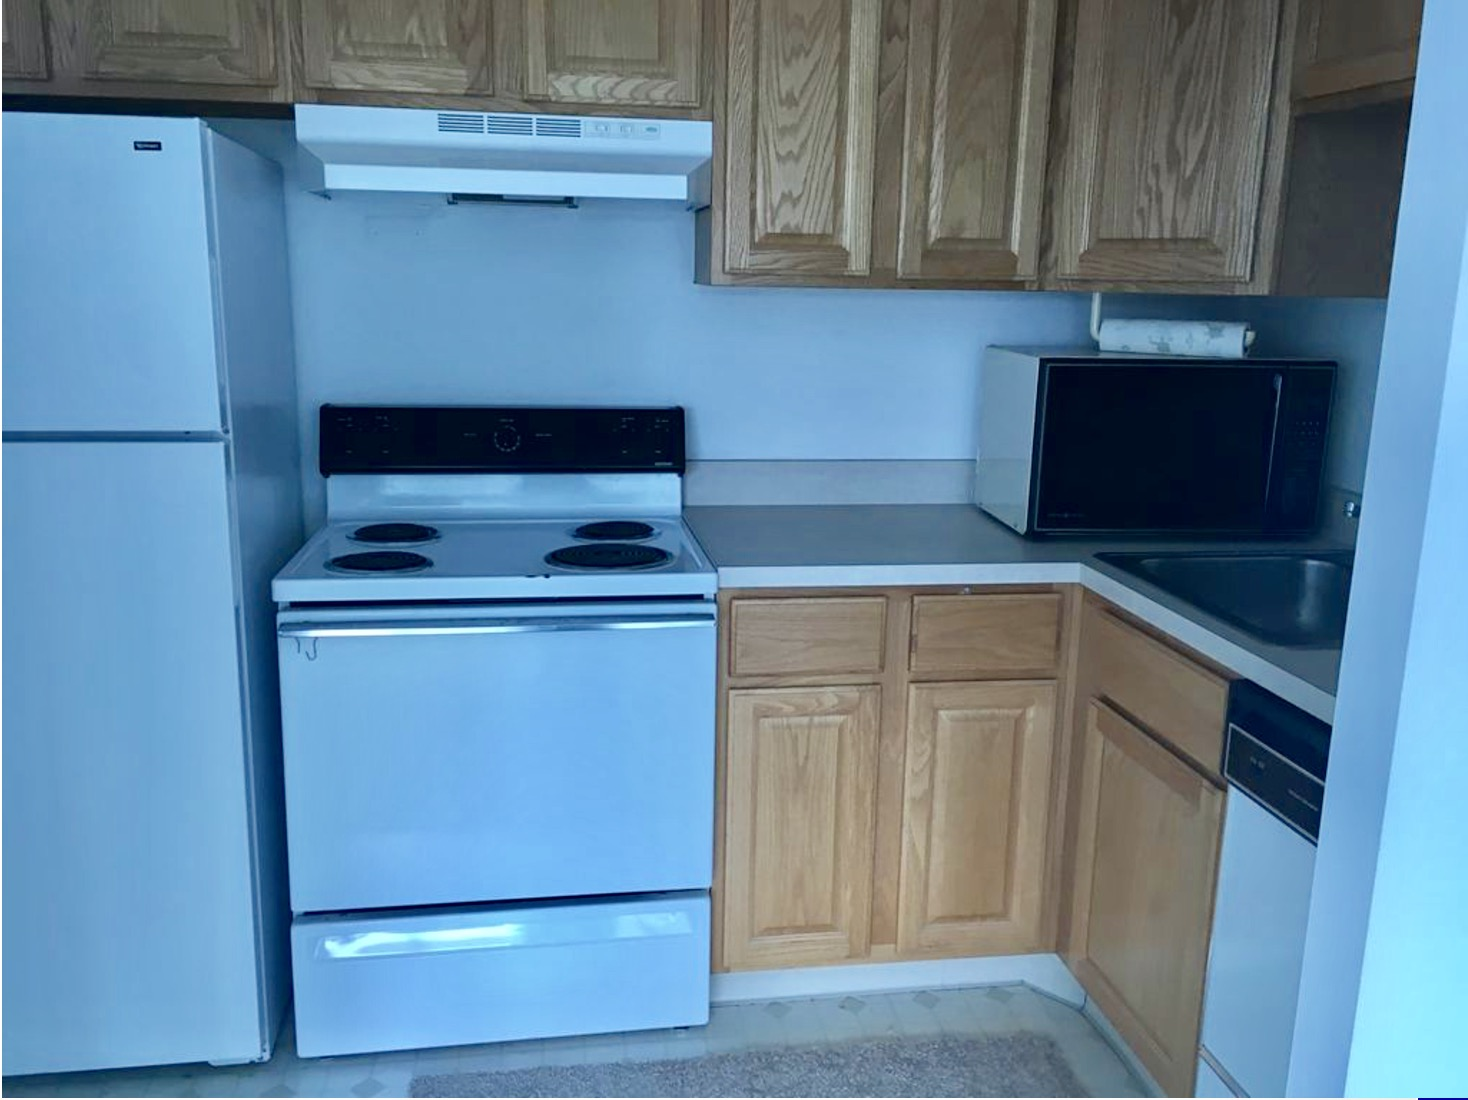 Condos Available for Sale or Rent   Tower Plaza Condominiums of Ann ...